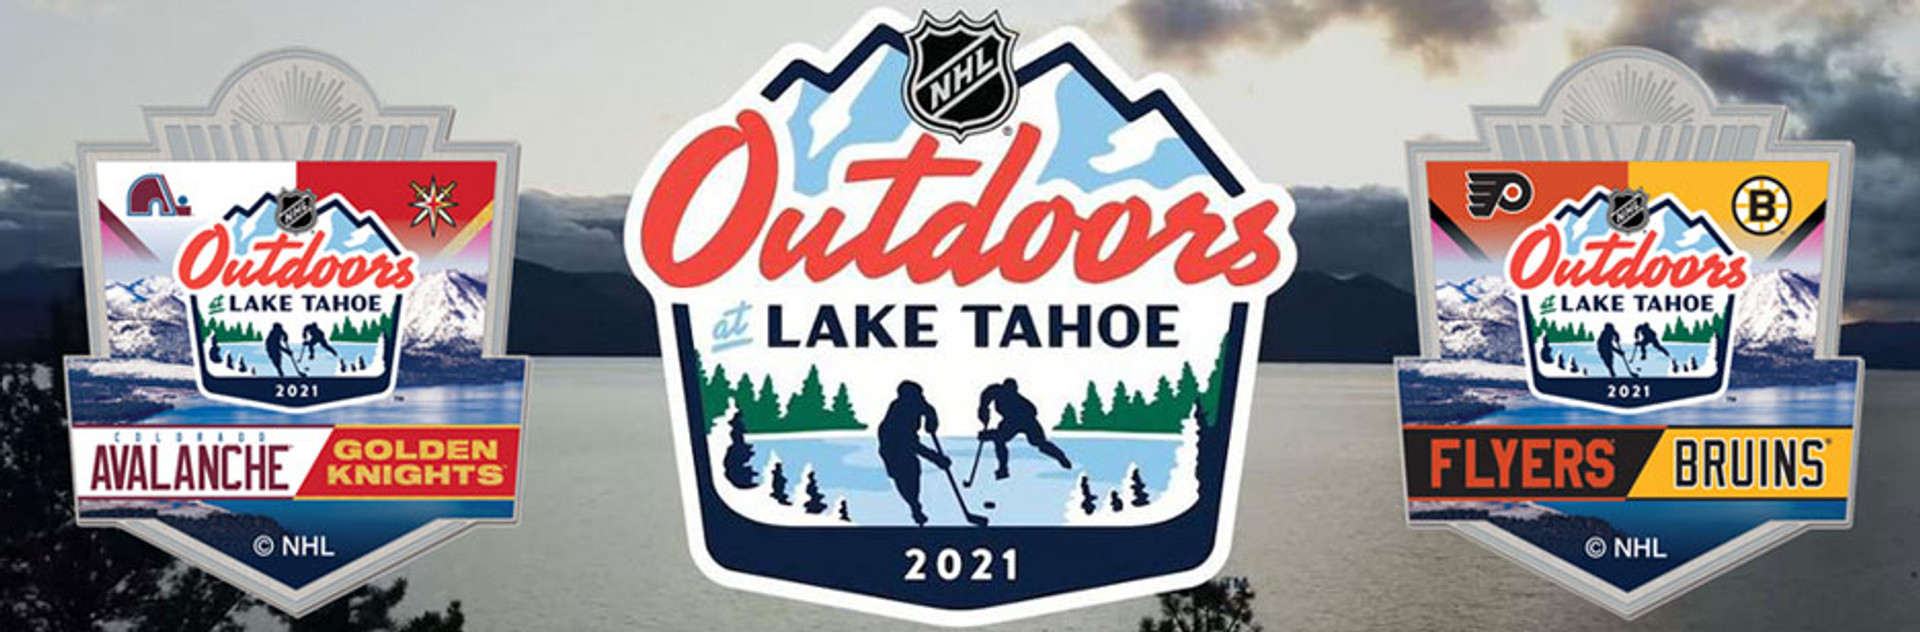 lake tahoe nhl pins